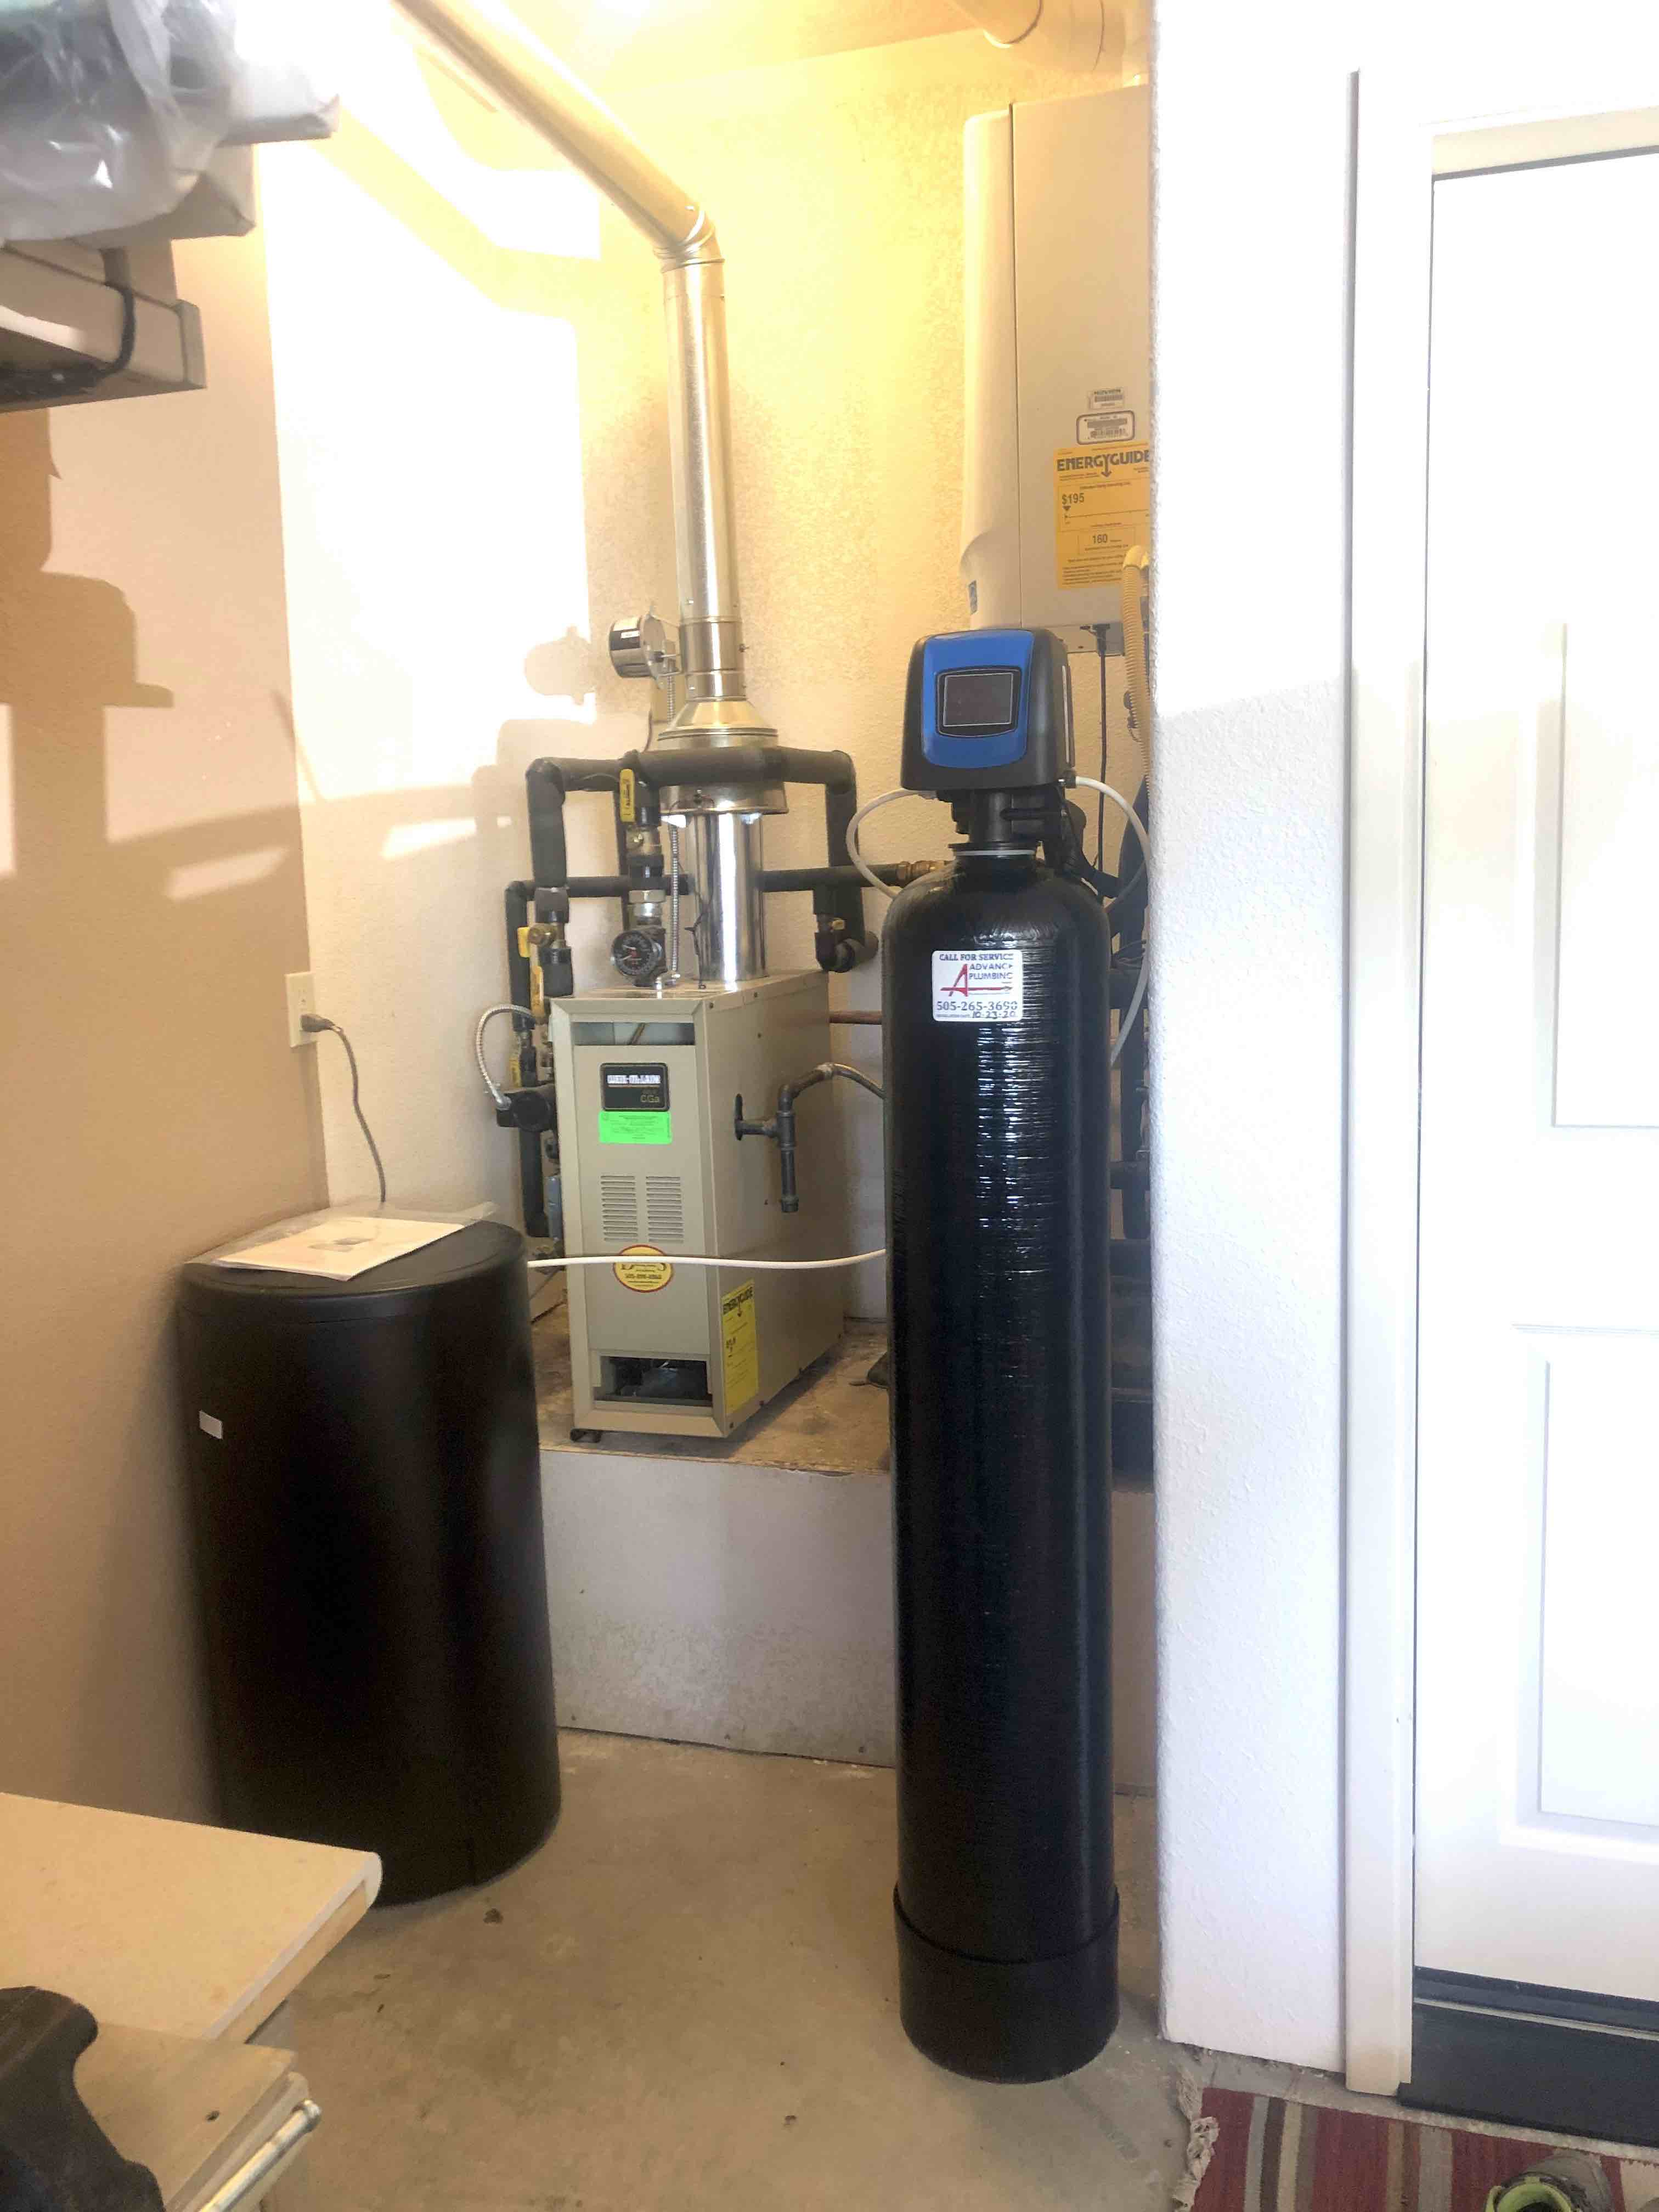 WIFI Enabled Water Softener